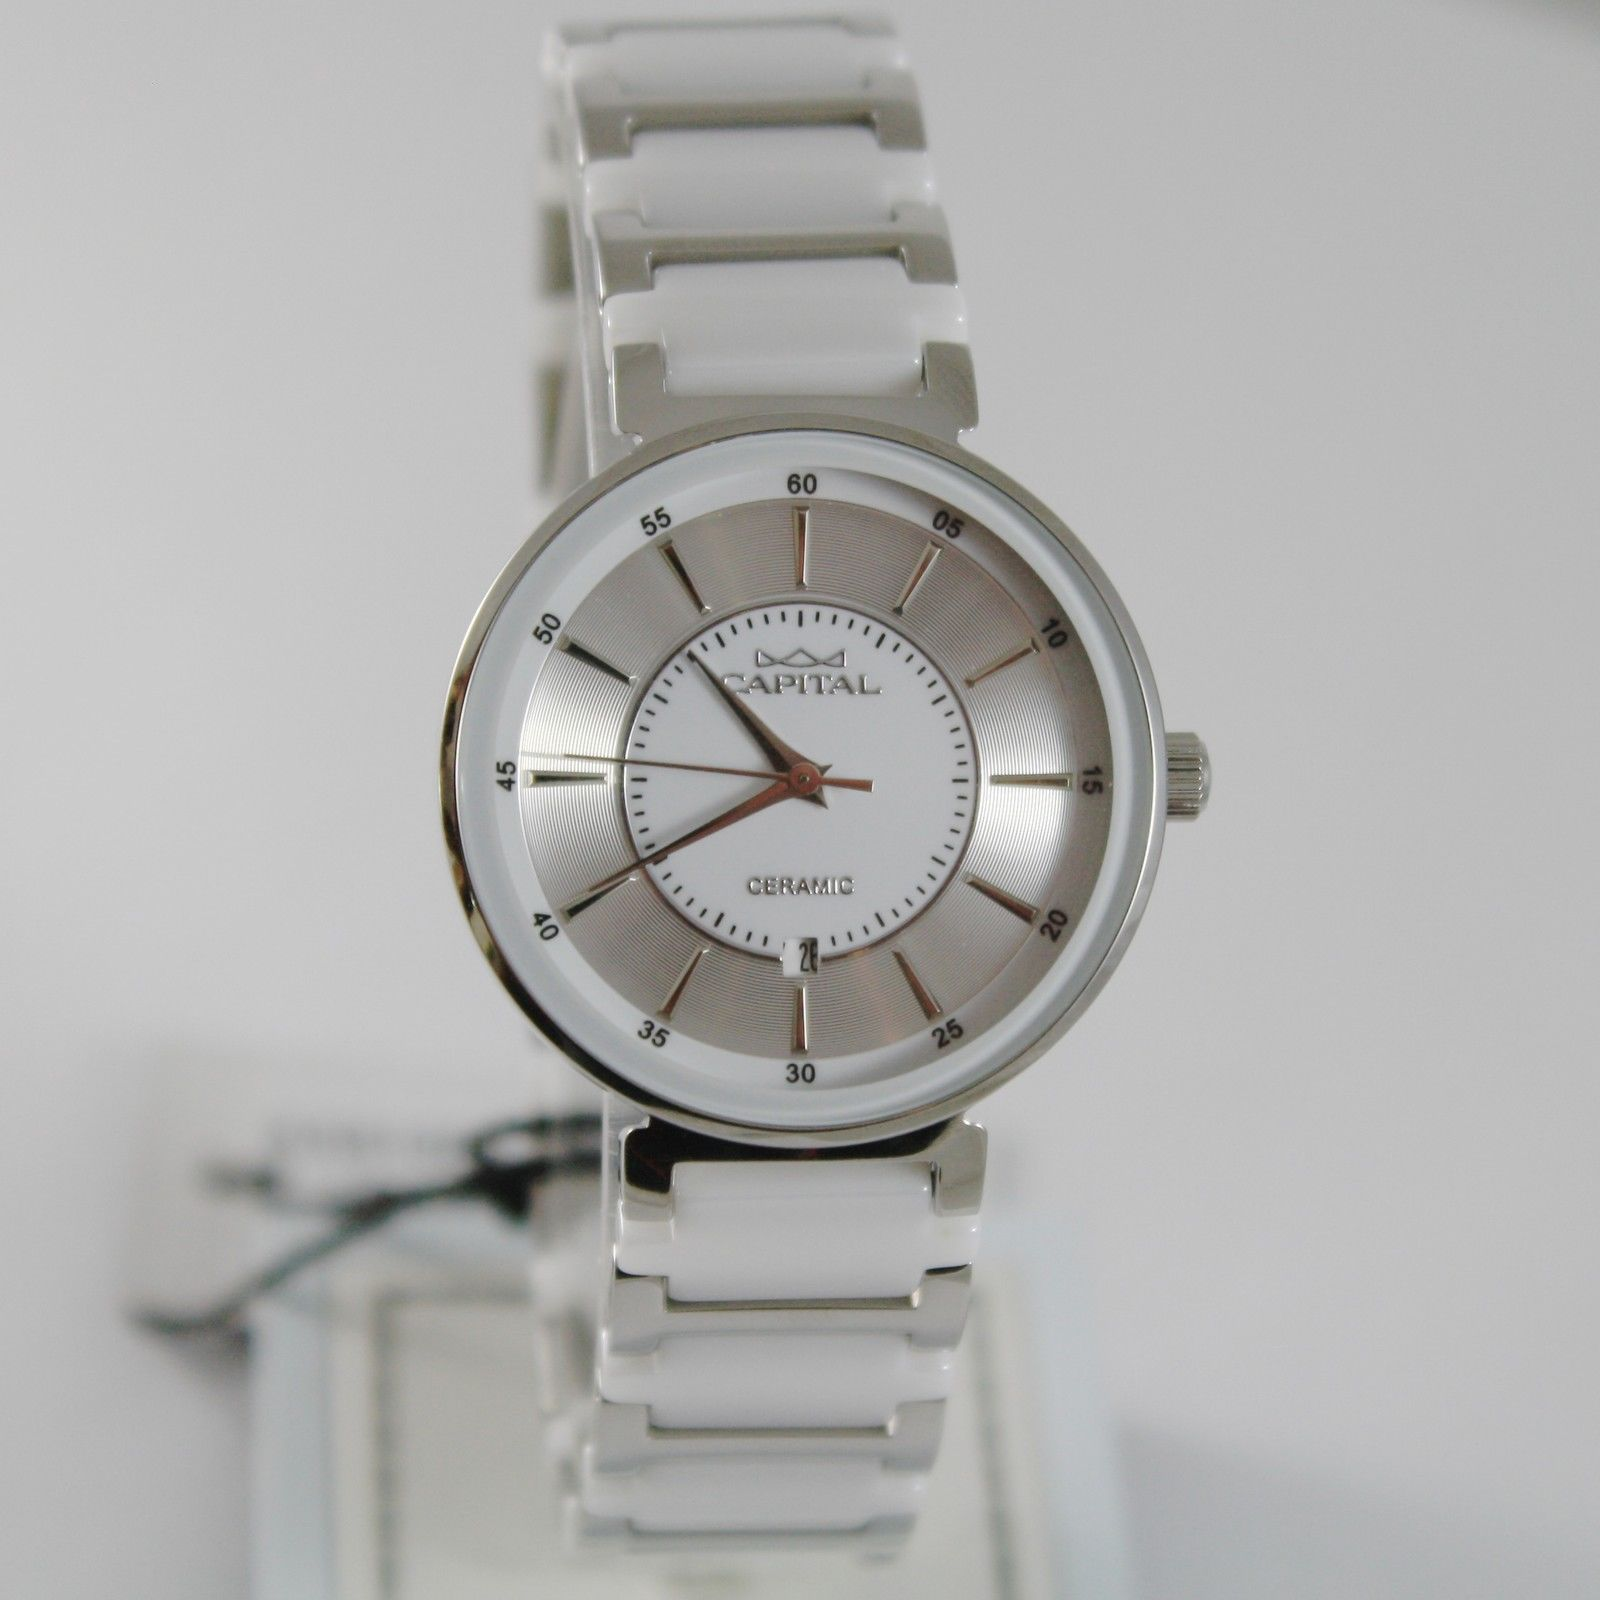 CAPITAL WATCH QUARTZ MOVEMENT 32 MM CASE WITH DATE, VINTAGE, WHITE CERAMIC